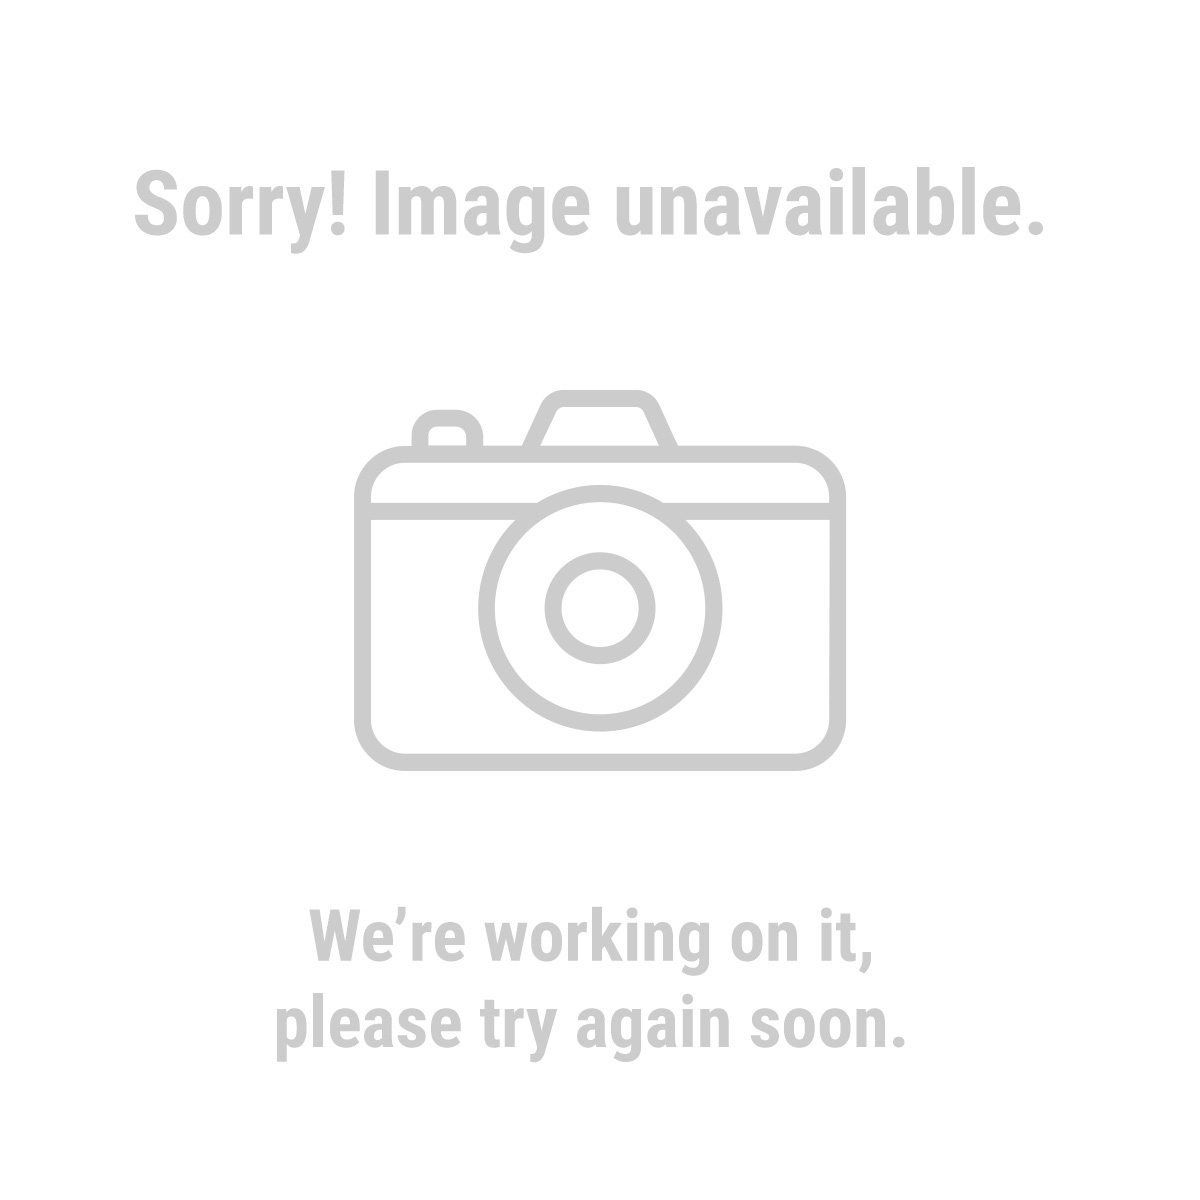 Central-Forge 5969 7 Piece Tube Flaring Kit